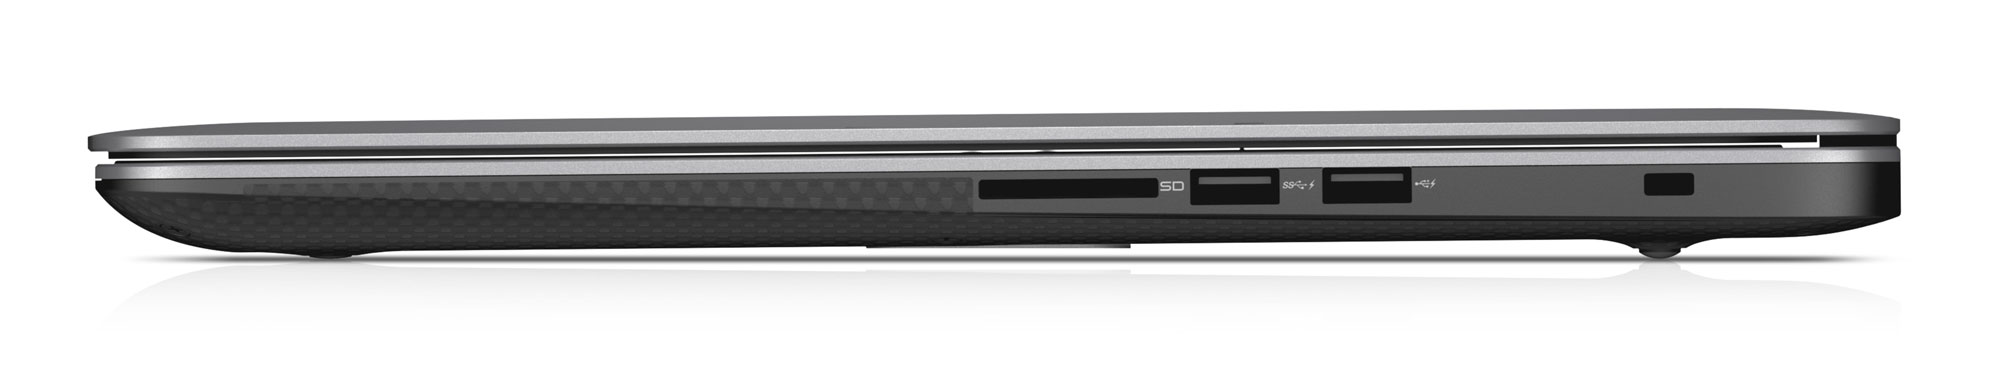 The Dell M3800 is 18mm (0.71 inches) thick and includes a high-speed Thunderbolt port to make it easier for Mac users to move to the Windows machine.